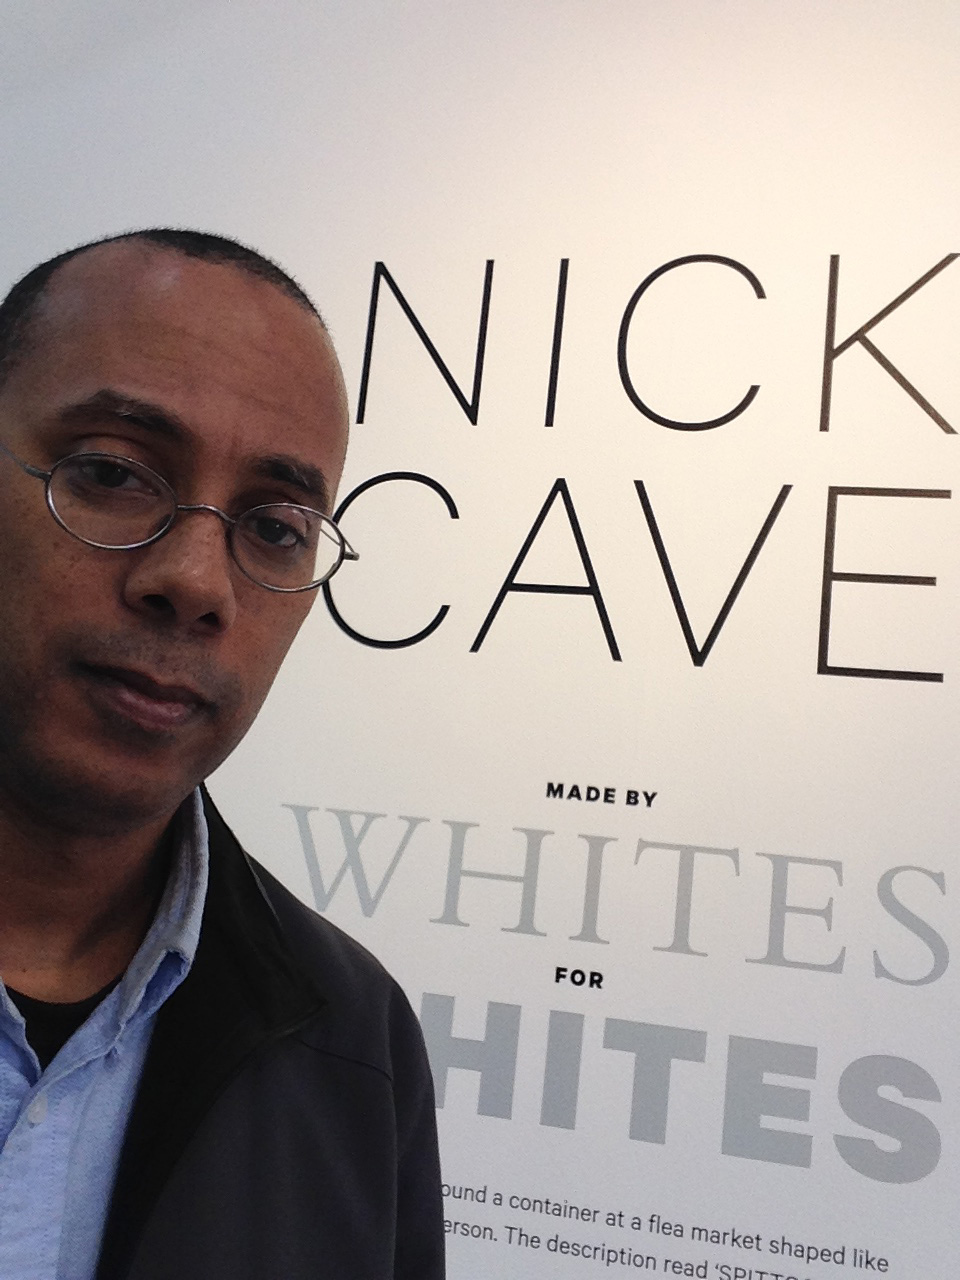 photo of the Nick Cave: Made by Whites for Whites exhibit